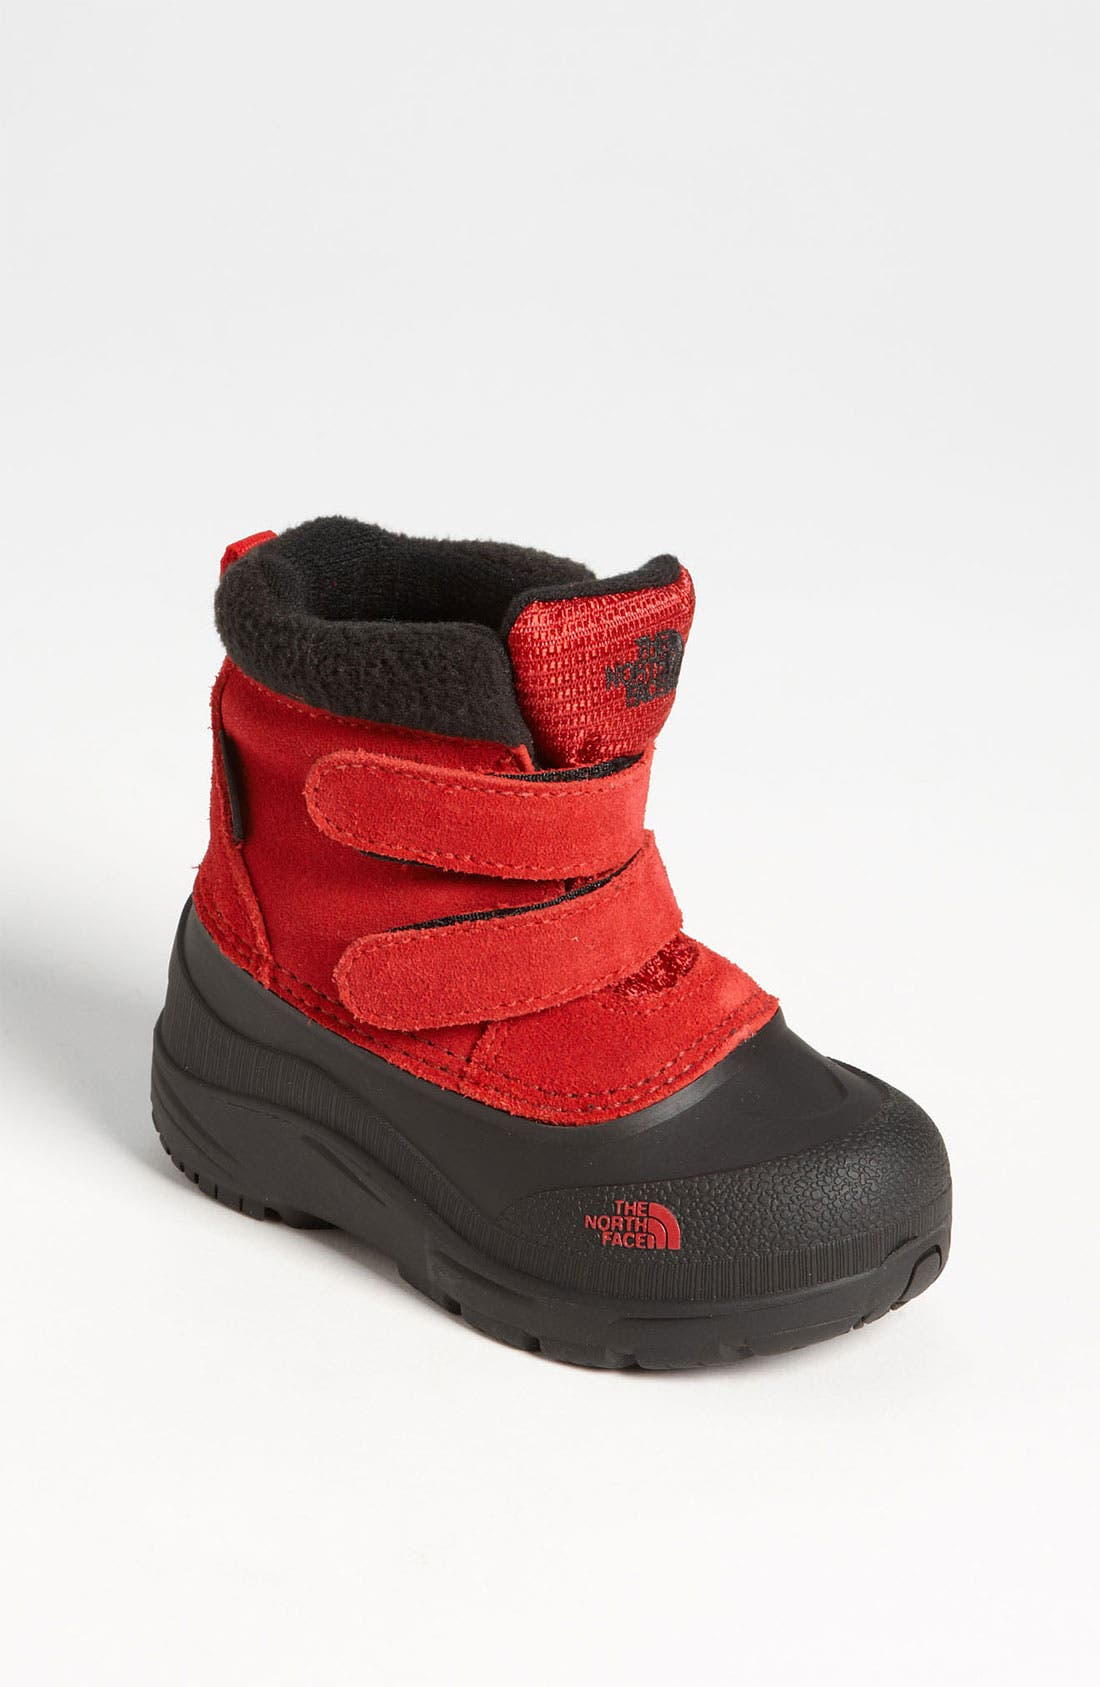 Alternate Image 1 Selected - The North Face 'Chilkat' Boots (Walker & Toddler)